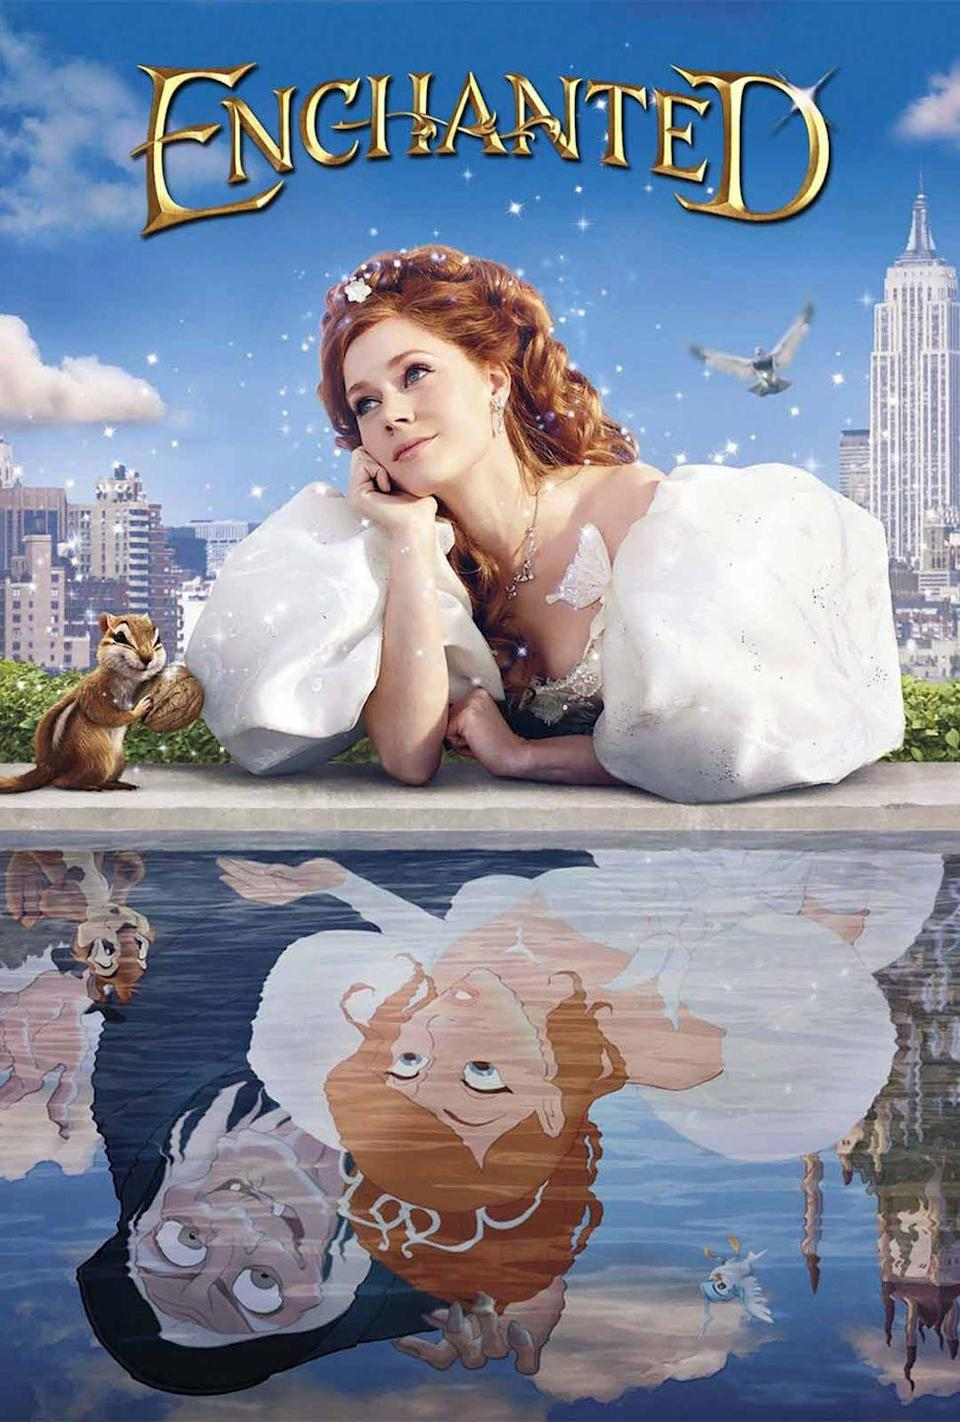 """<p><a class=""""link rapid-noclick-resp"""" href=""""https://www.amazon.com/Enchanted-Amy-Adams/dp/B0094M2OW2/?tag=syn-yahoo-20&ascsubtag=%5Bartid%7C10063.g.36700668%5Bsrc%7Cyahoo-us"""" rel=""""nofollow noopener"""" target=""""_blank"""" data-ylk=""""slk:Watch Now"""">Watch Now</a></p><p>Everything you love about Disney fairy tales came to life in 2007's <em>Enchanted</em>, starring Amy Adams as Giselle, a would-be princess who is forced to trade in her animated world for the skyscrapers of New York City. Yes, McDreamy (Patrick Dempsey) is in this one.</p>"""